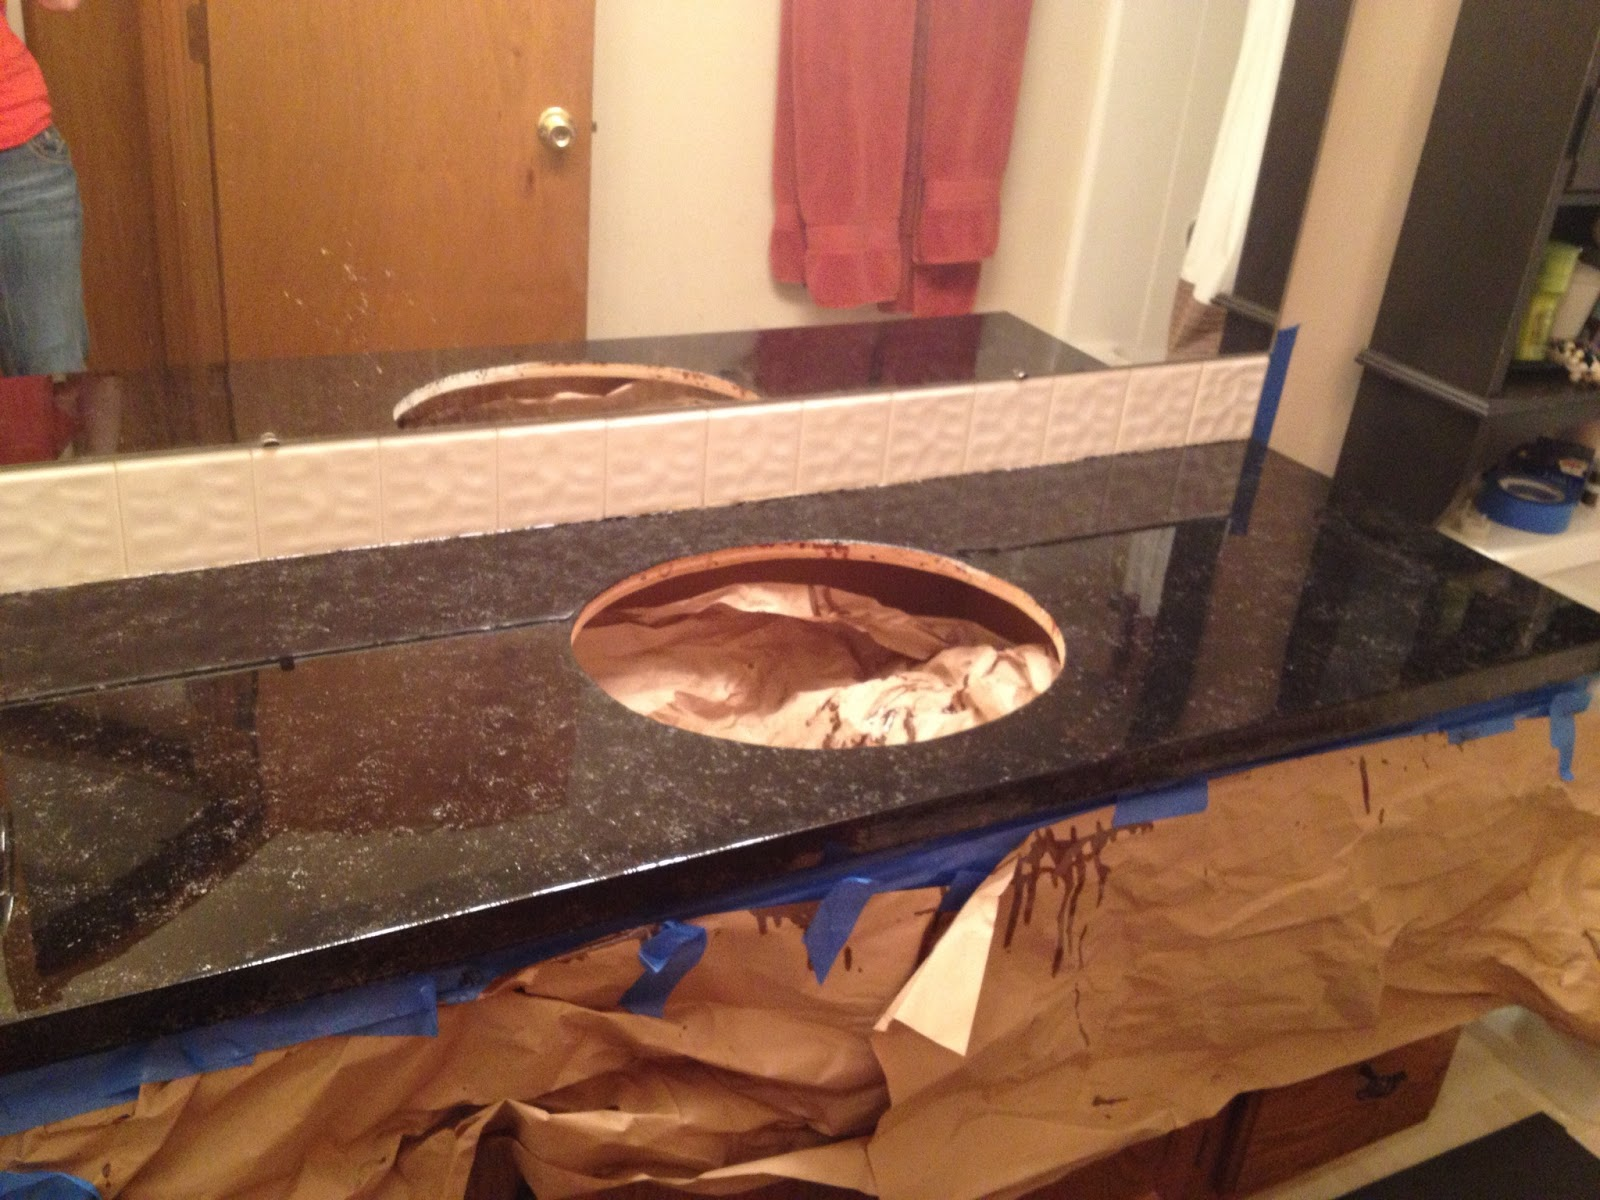 Handy in KS: Countertop Upgrade On the Cheap with Envirotex Lite